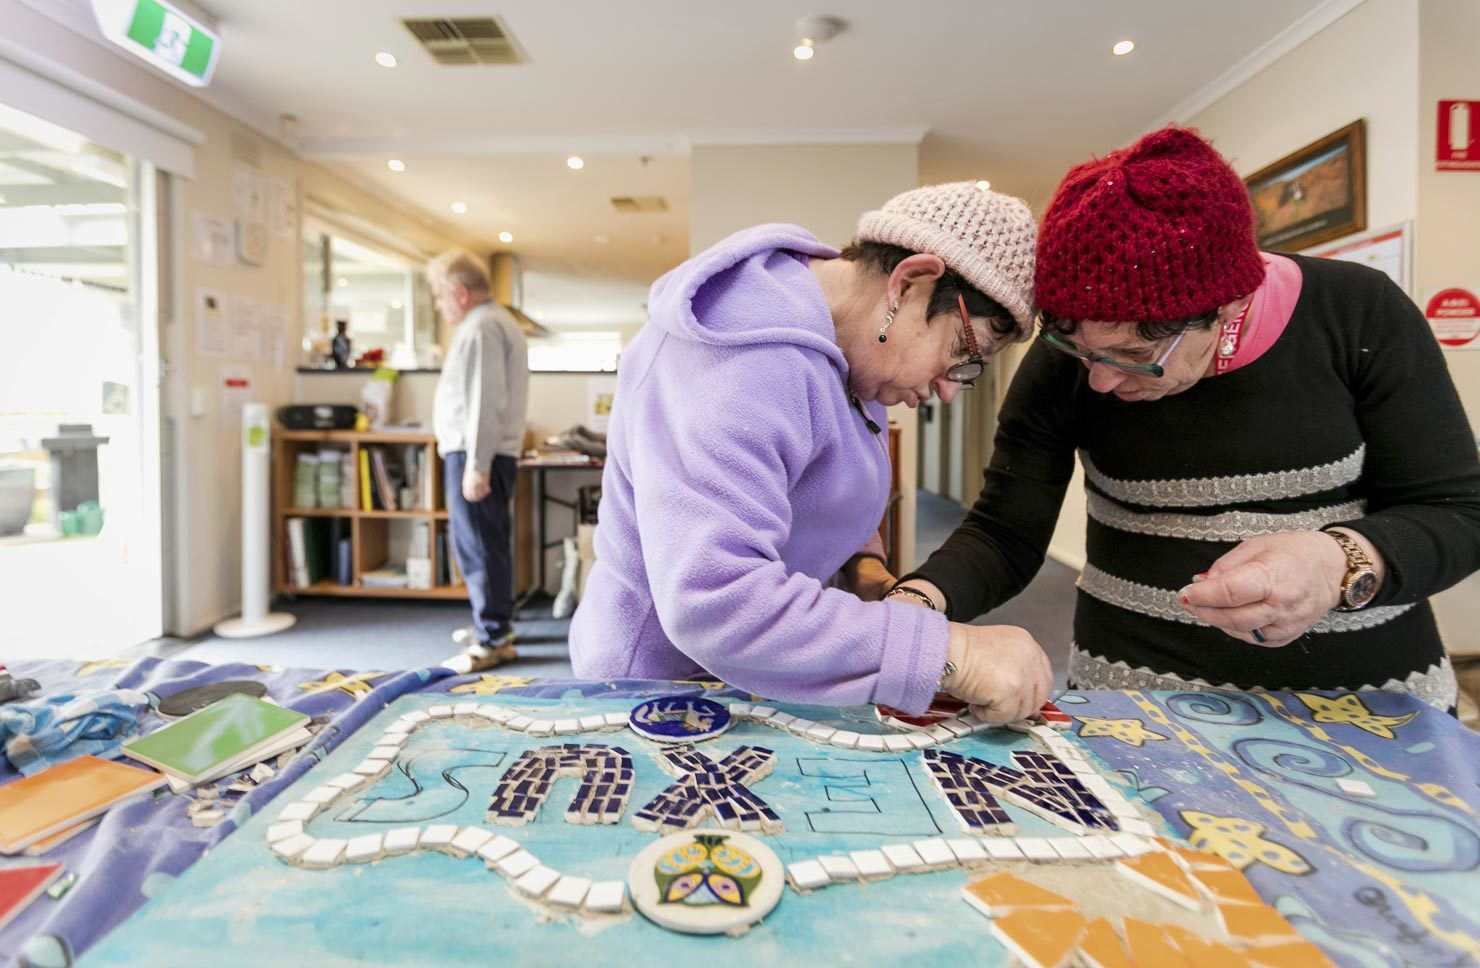 Elderley, aged care, women making mosaics